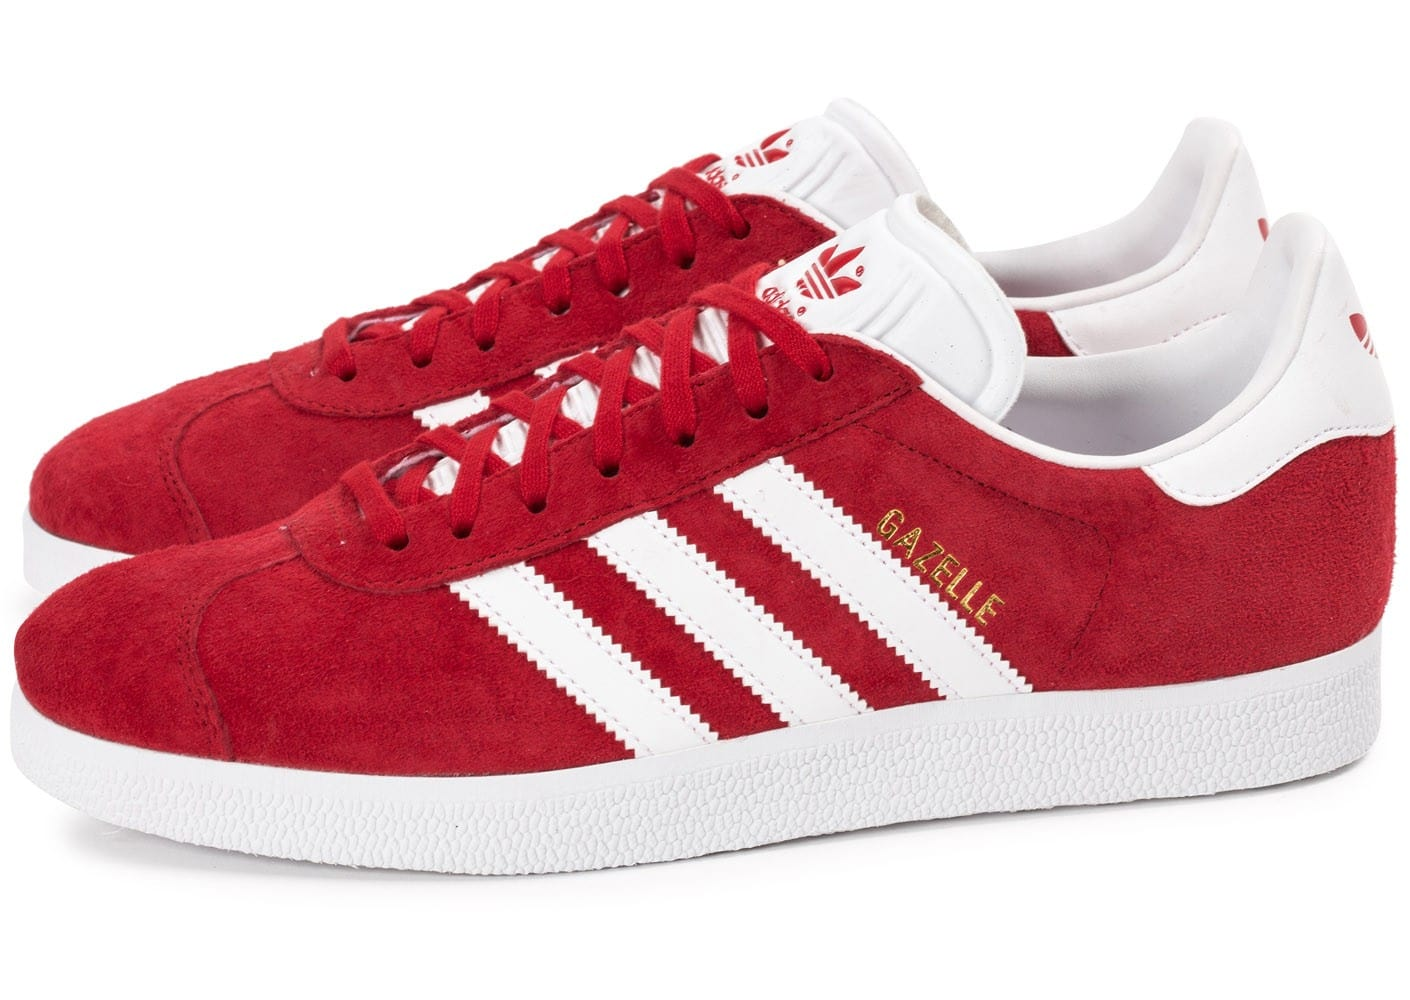 quality design 53226 87fd2 chaussure adidas gazelle rouge